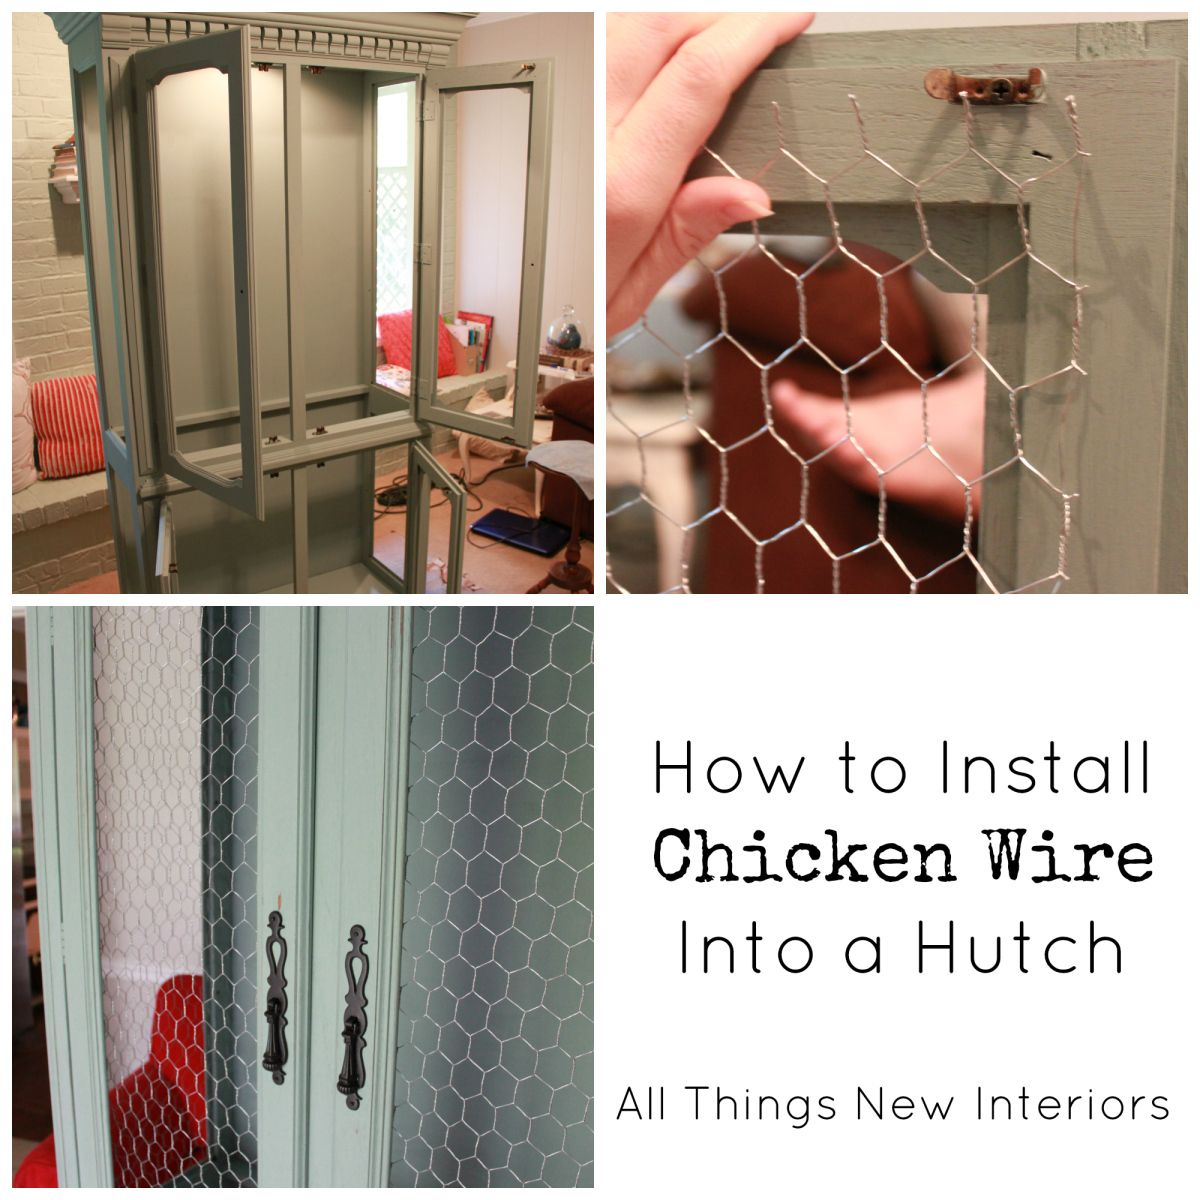 How to install chicken wire into a hutch for a casual, country look ...